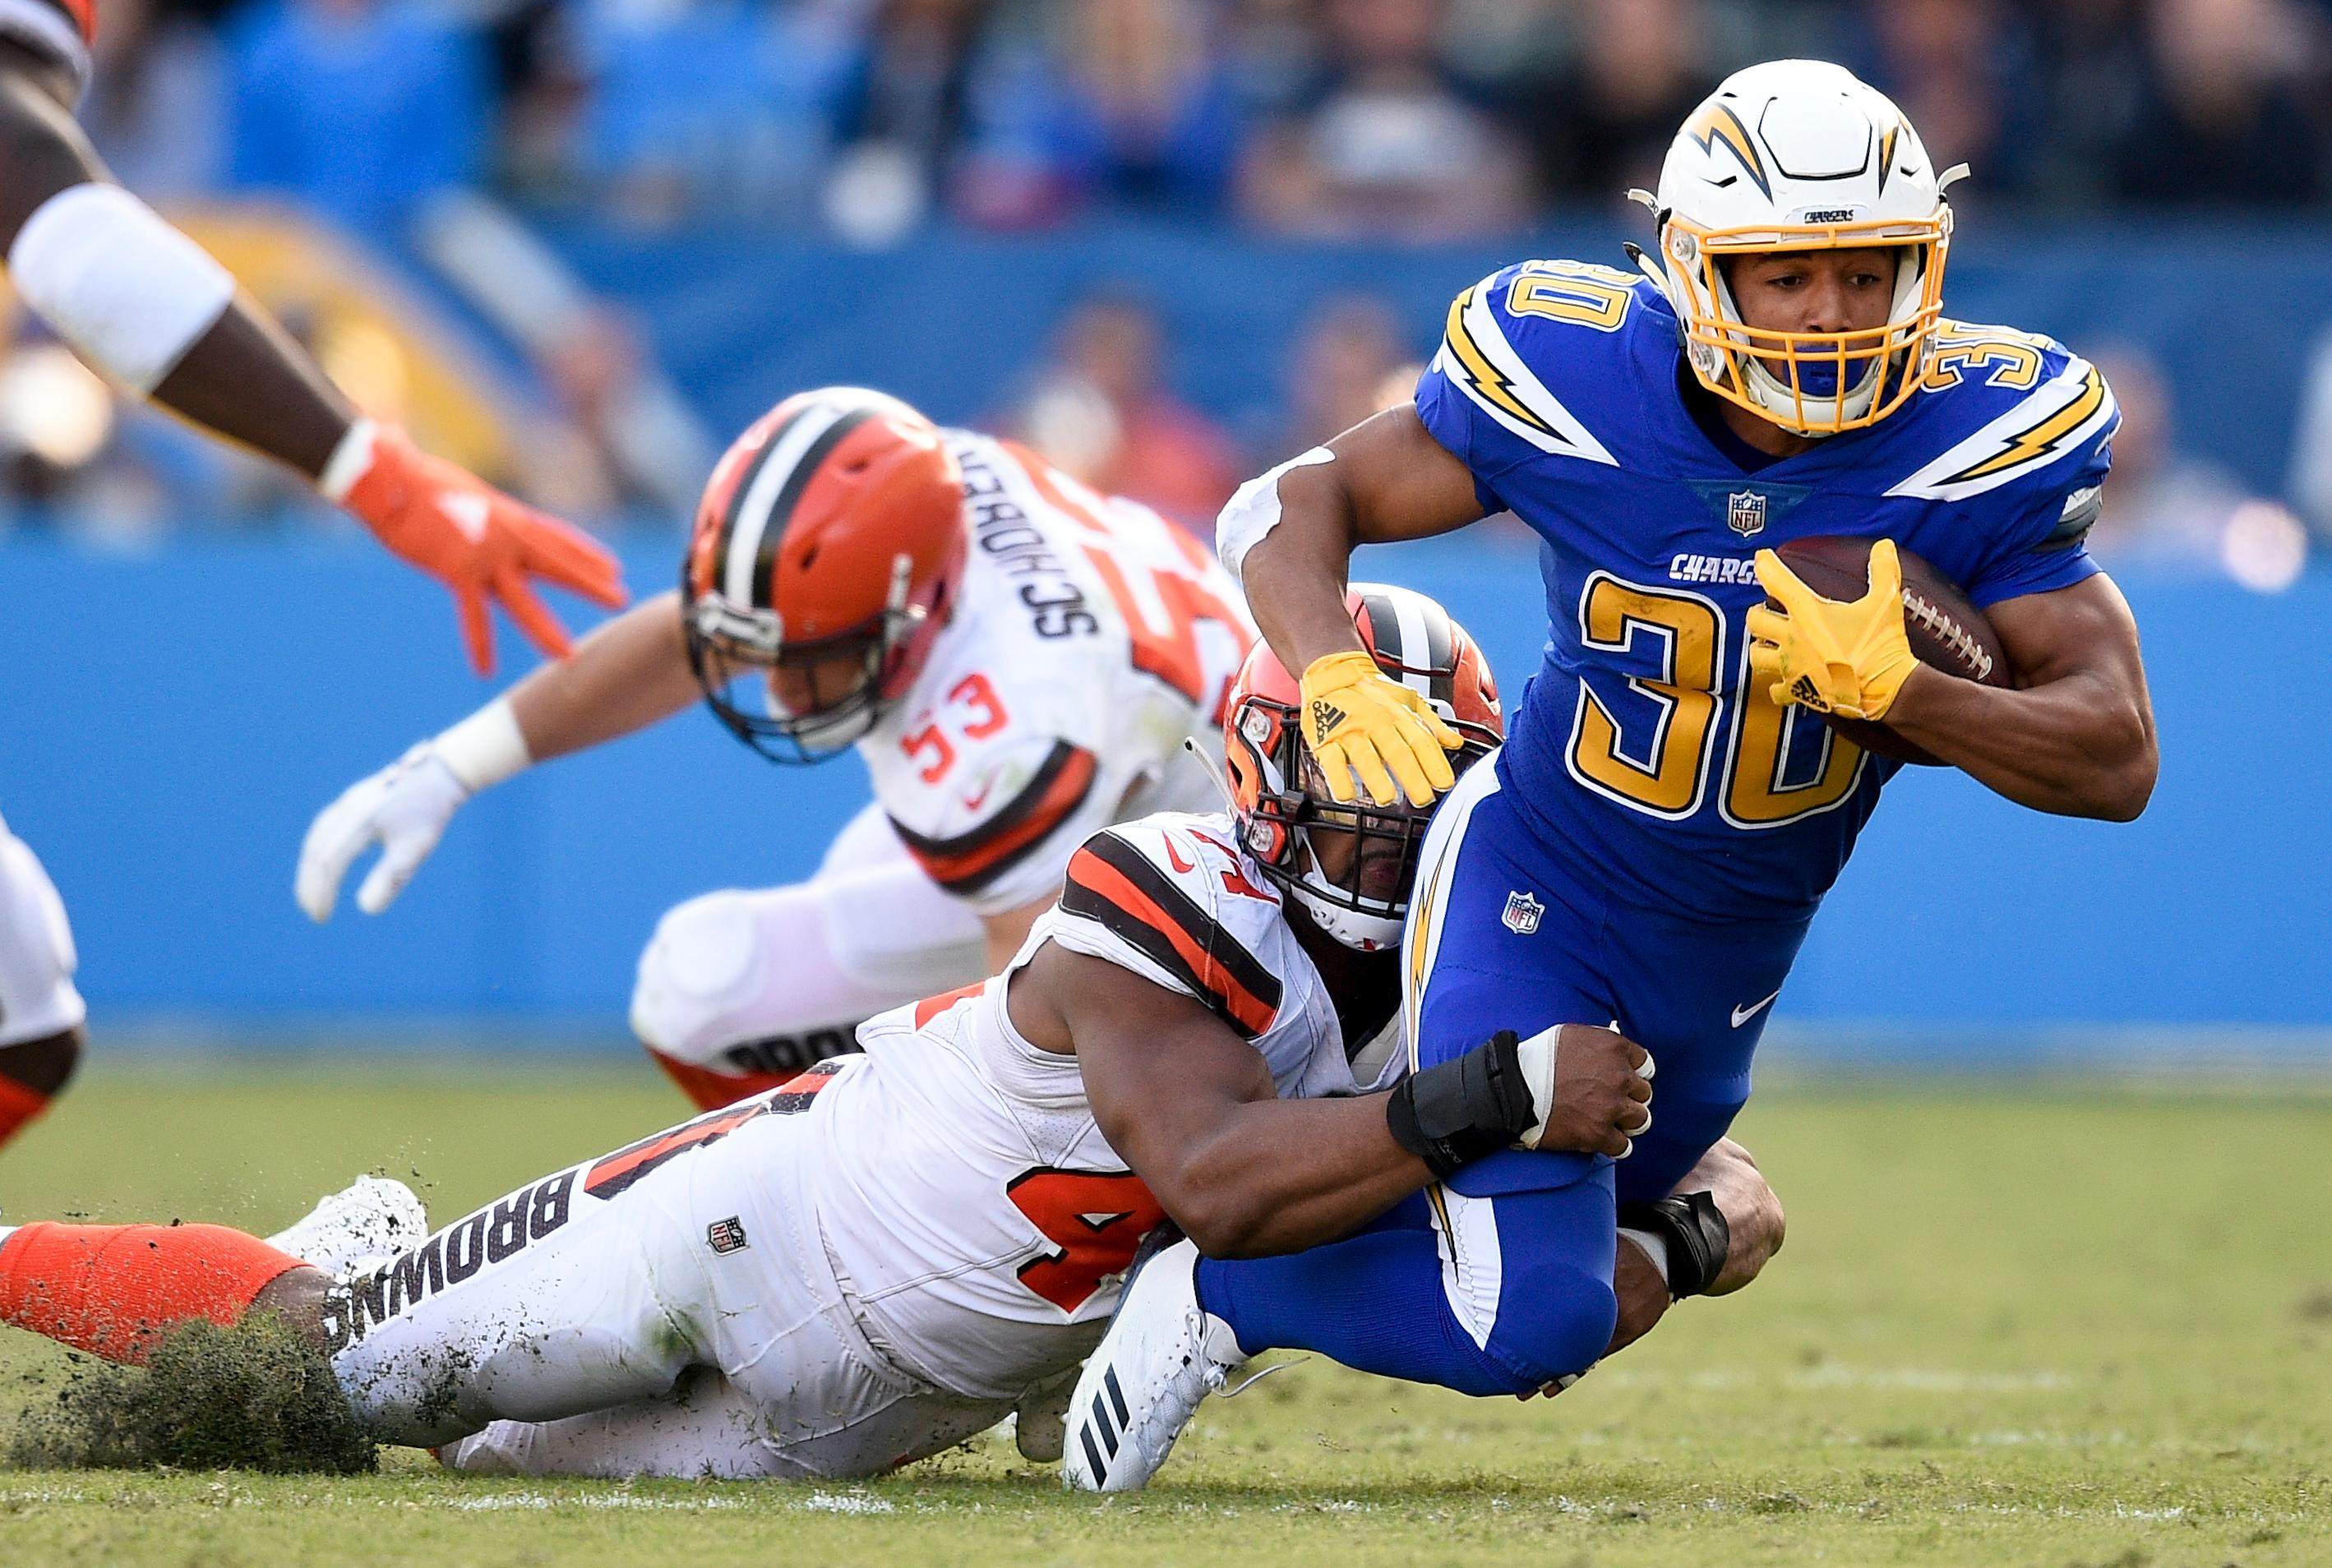 Los Angeles Chargers running back Austin Ekeler, right, is tackled by Cleveland Browns defensive end Nate Orchard during the first half of an NFL football game Sunday, Dec. 3, 2017, in Carson, Calif. (AP Photo/Kelvin Kuo)